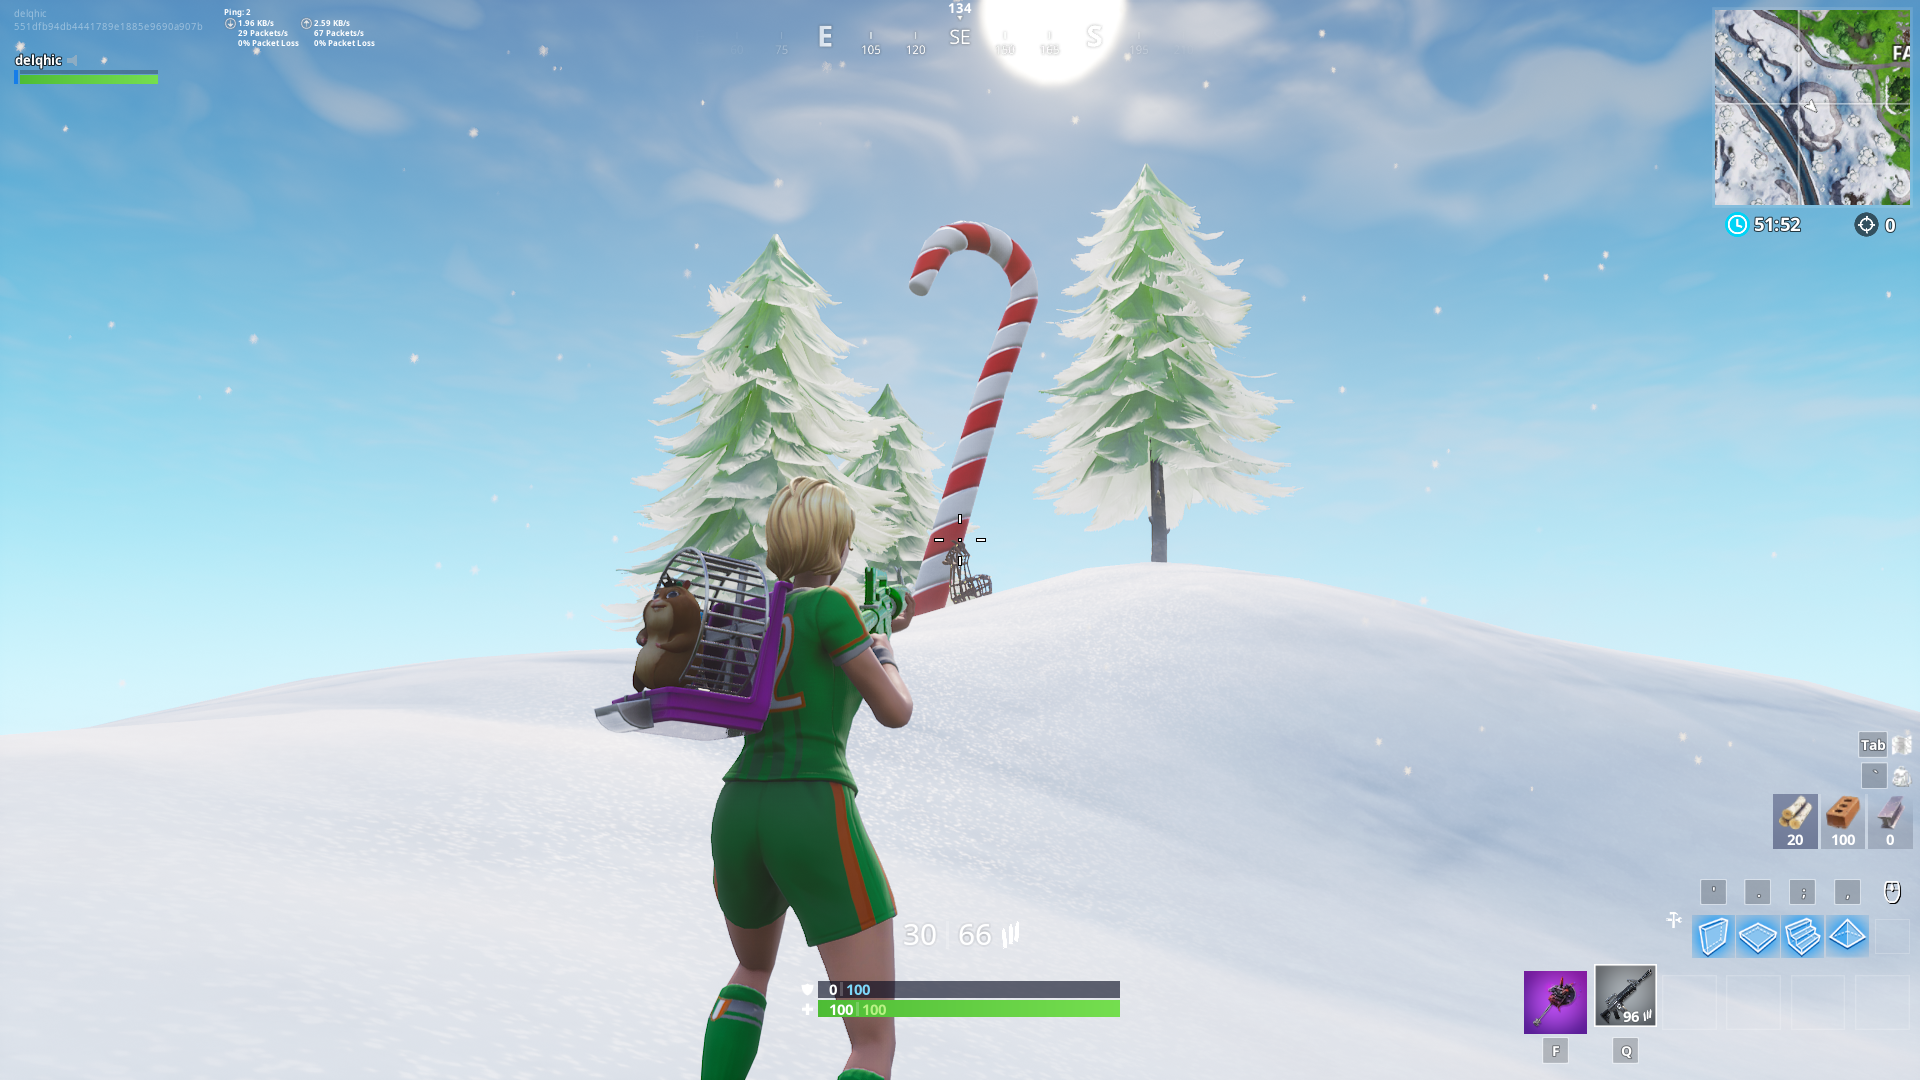 Giant Candy Cane Fortnite Locations 14 Days Of Fortnite Day 2